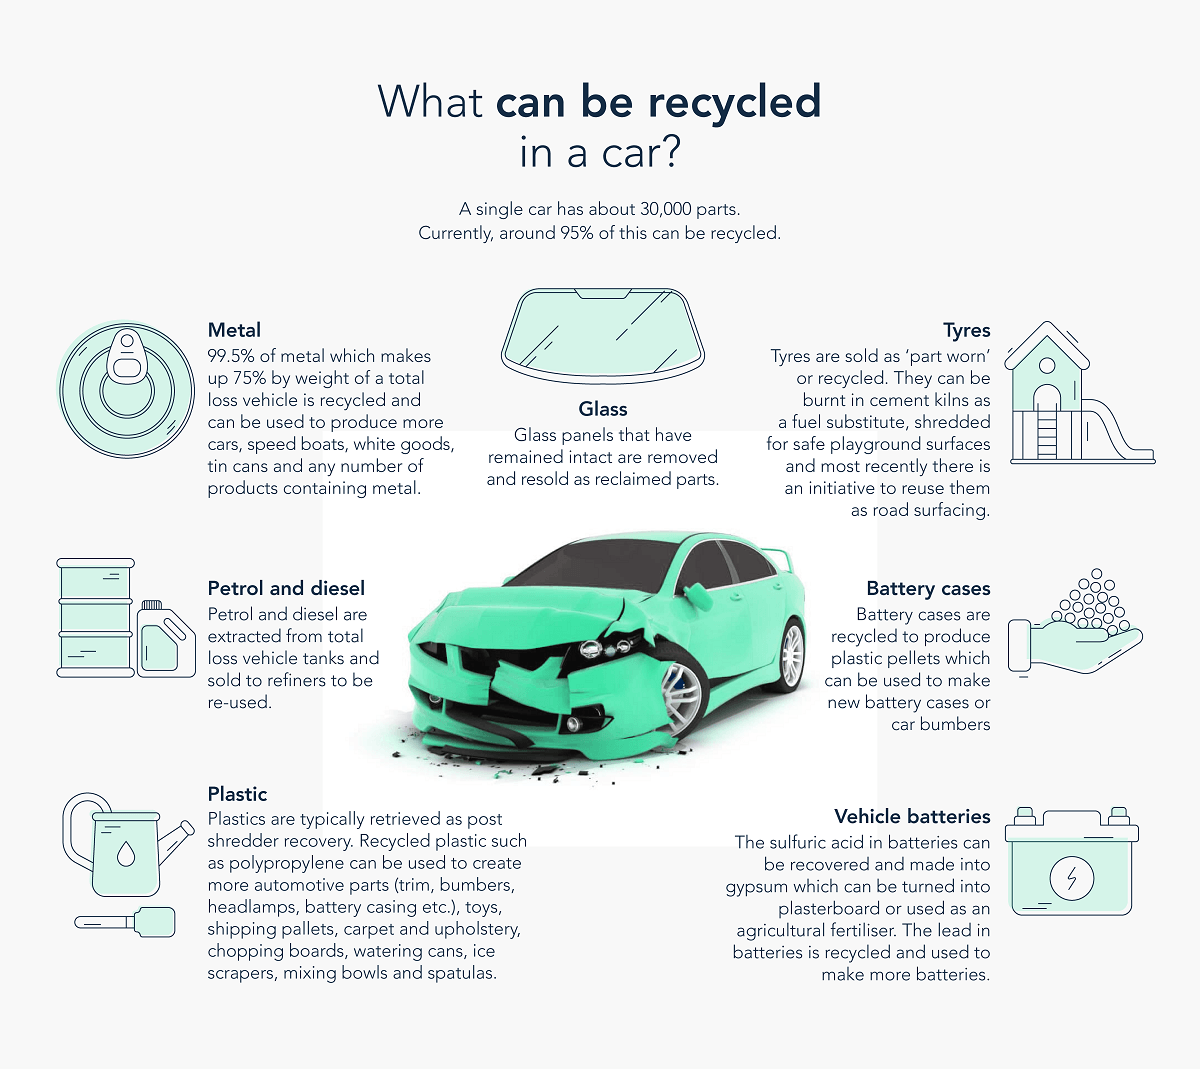 What can be recycled on a car?